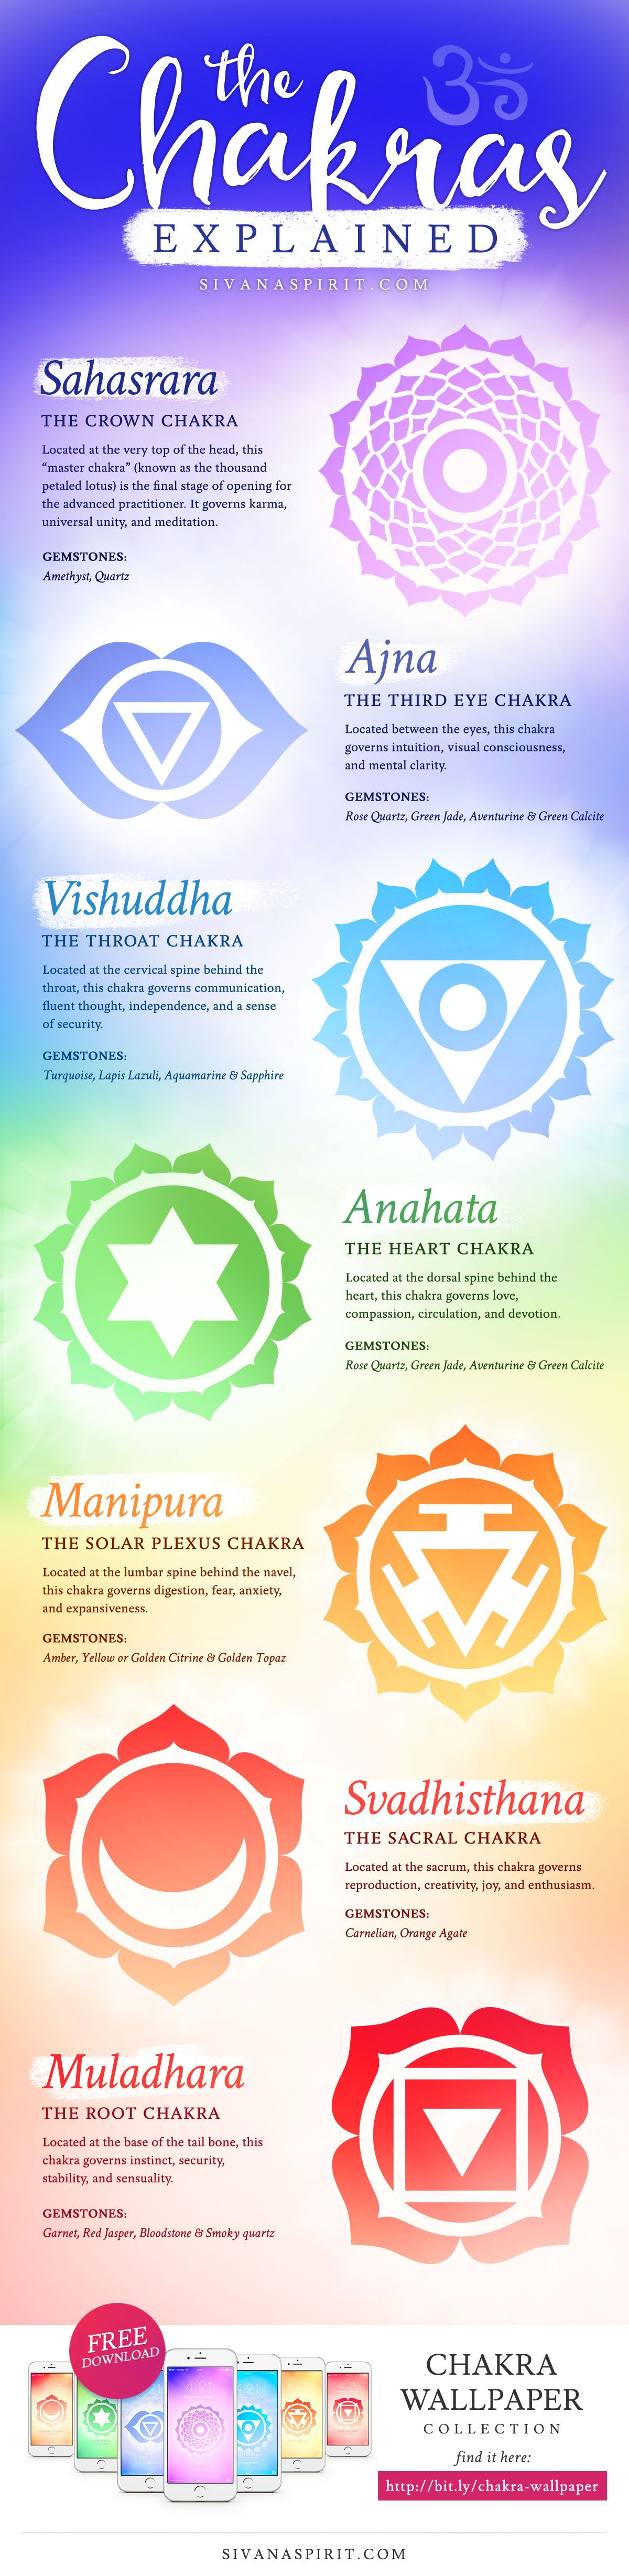 The Chakras Explained (Infographic)